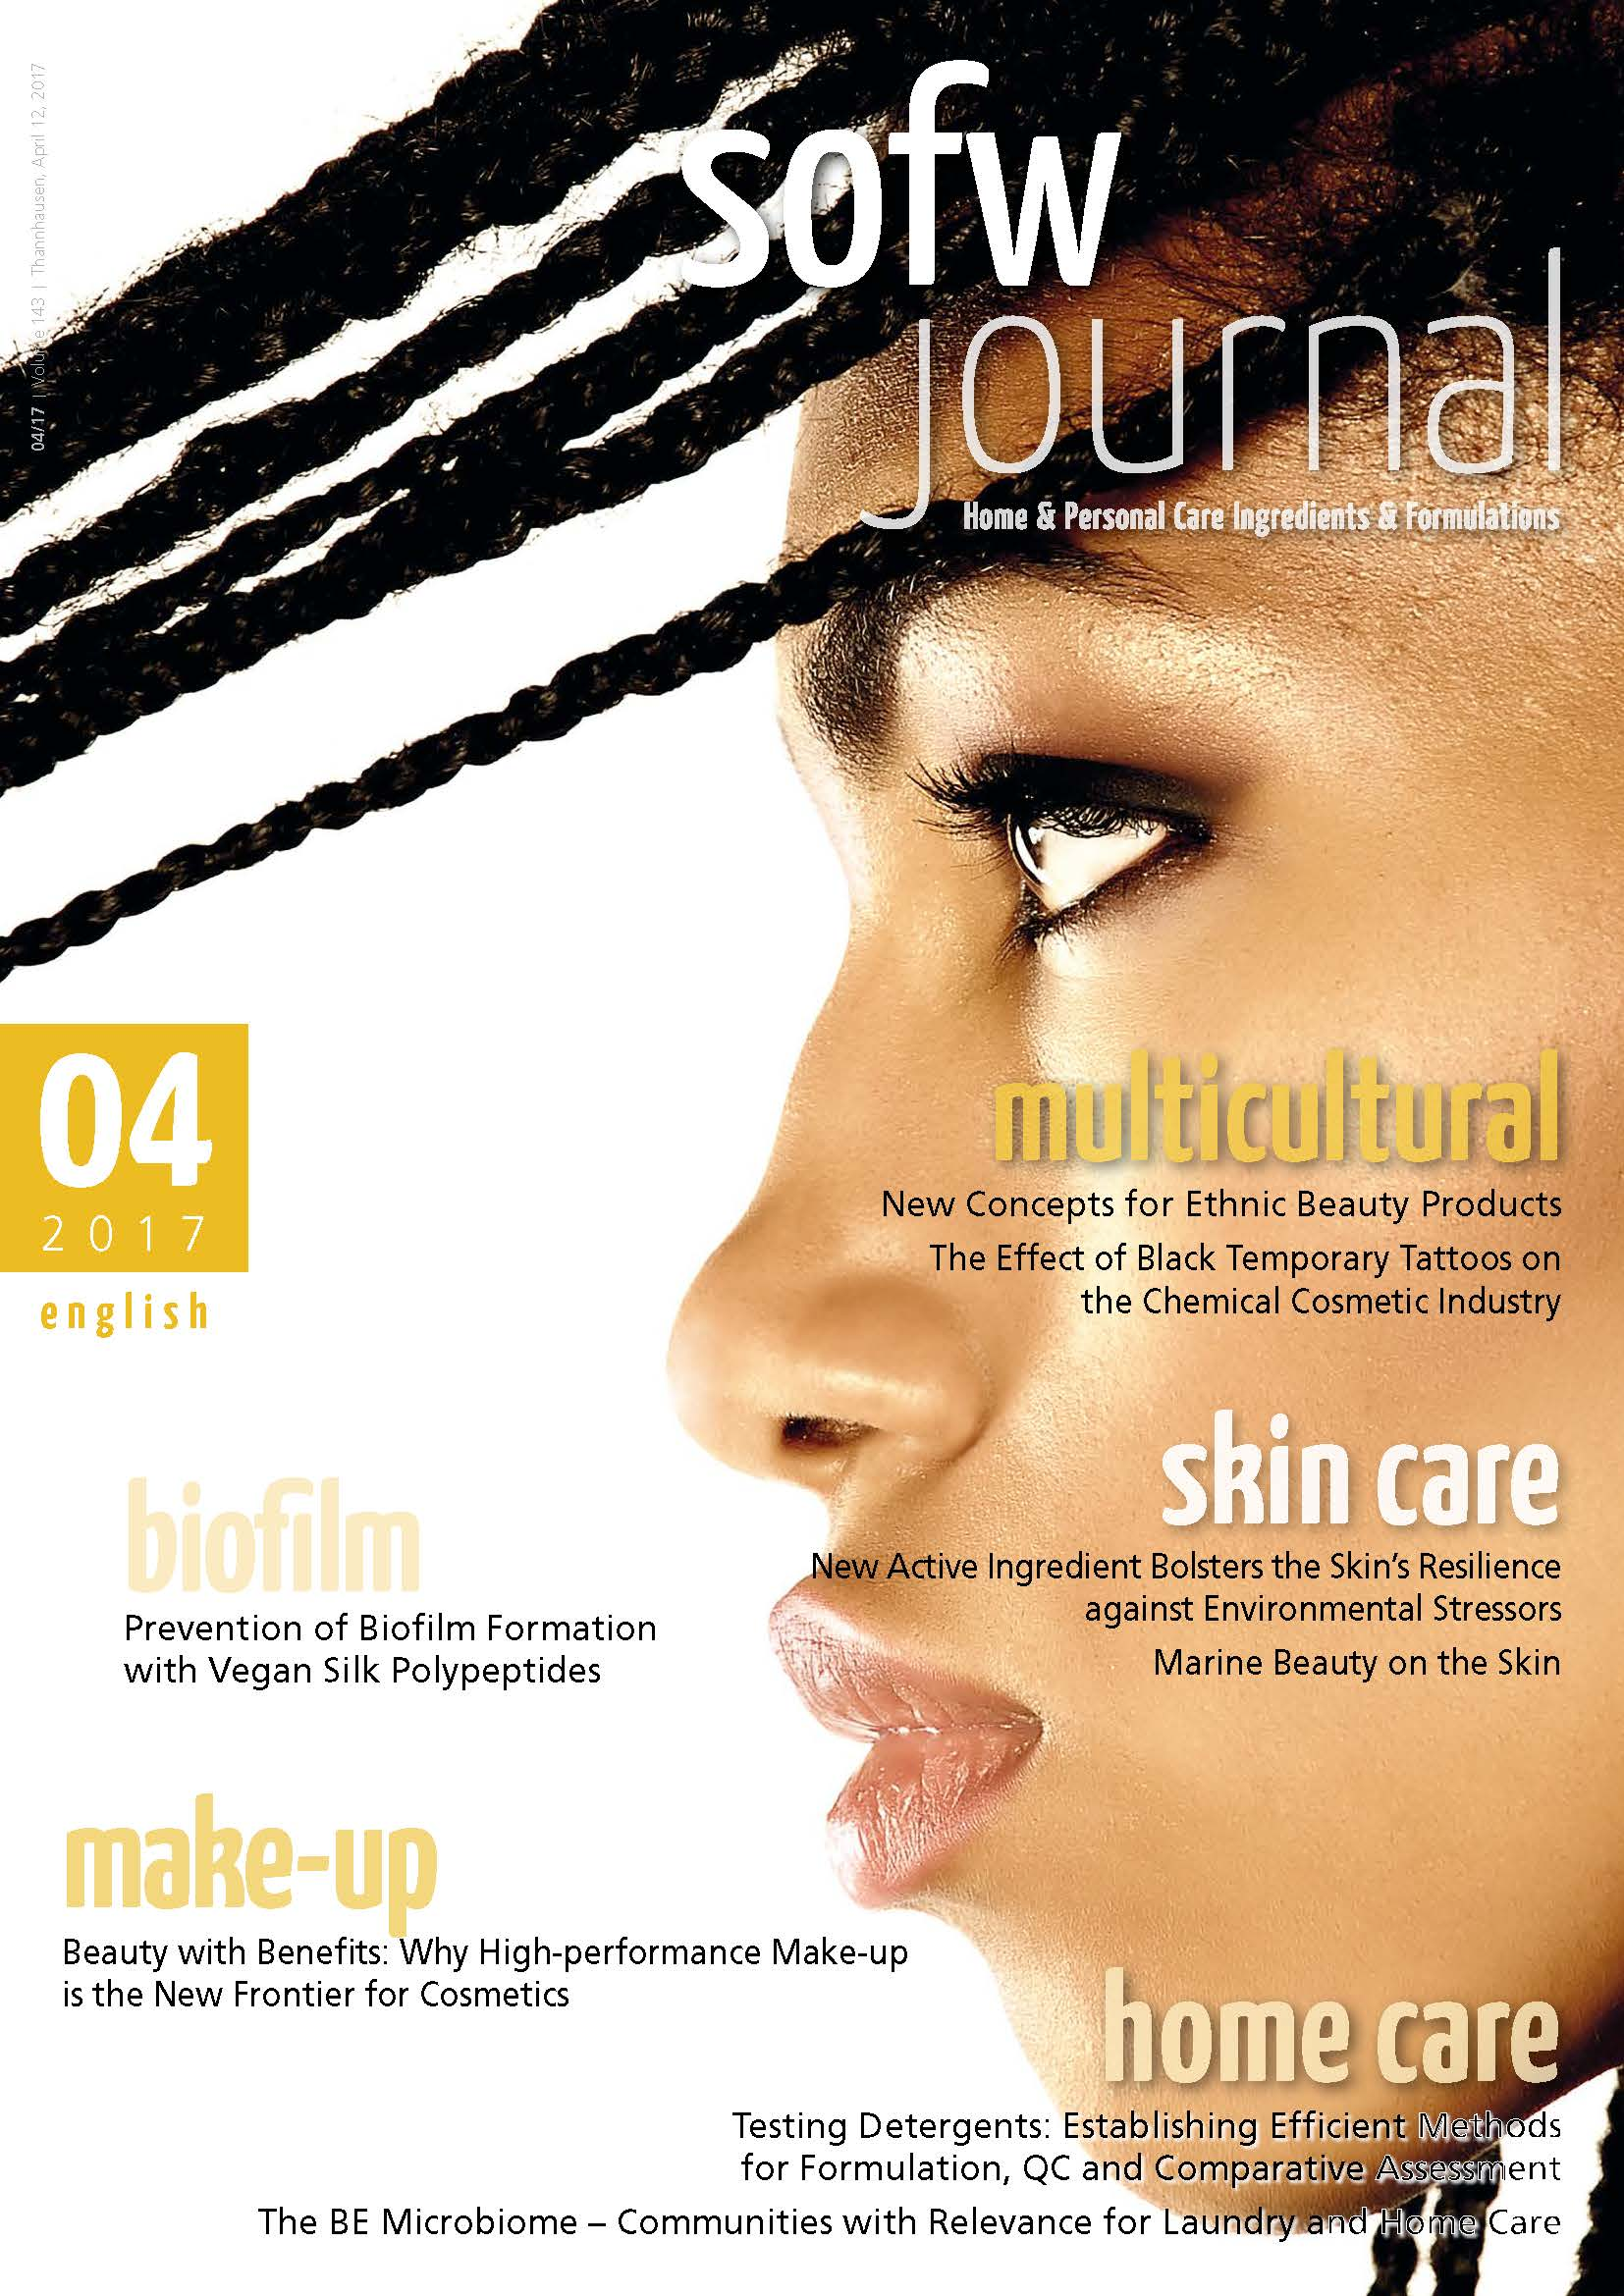 sofwjournal_en_2017_04_cover